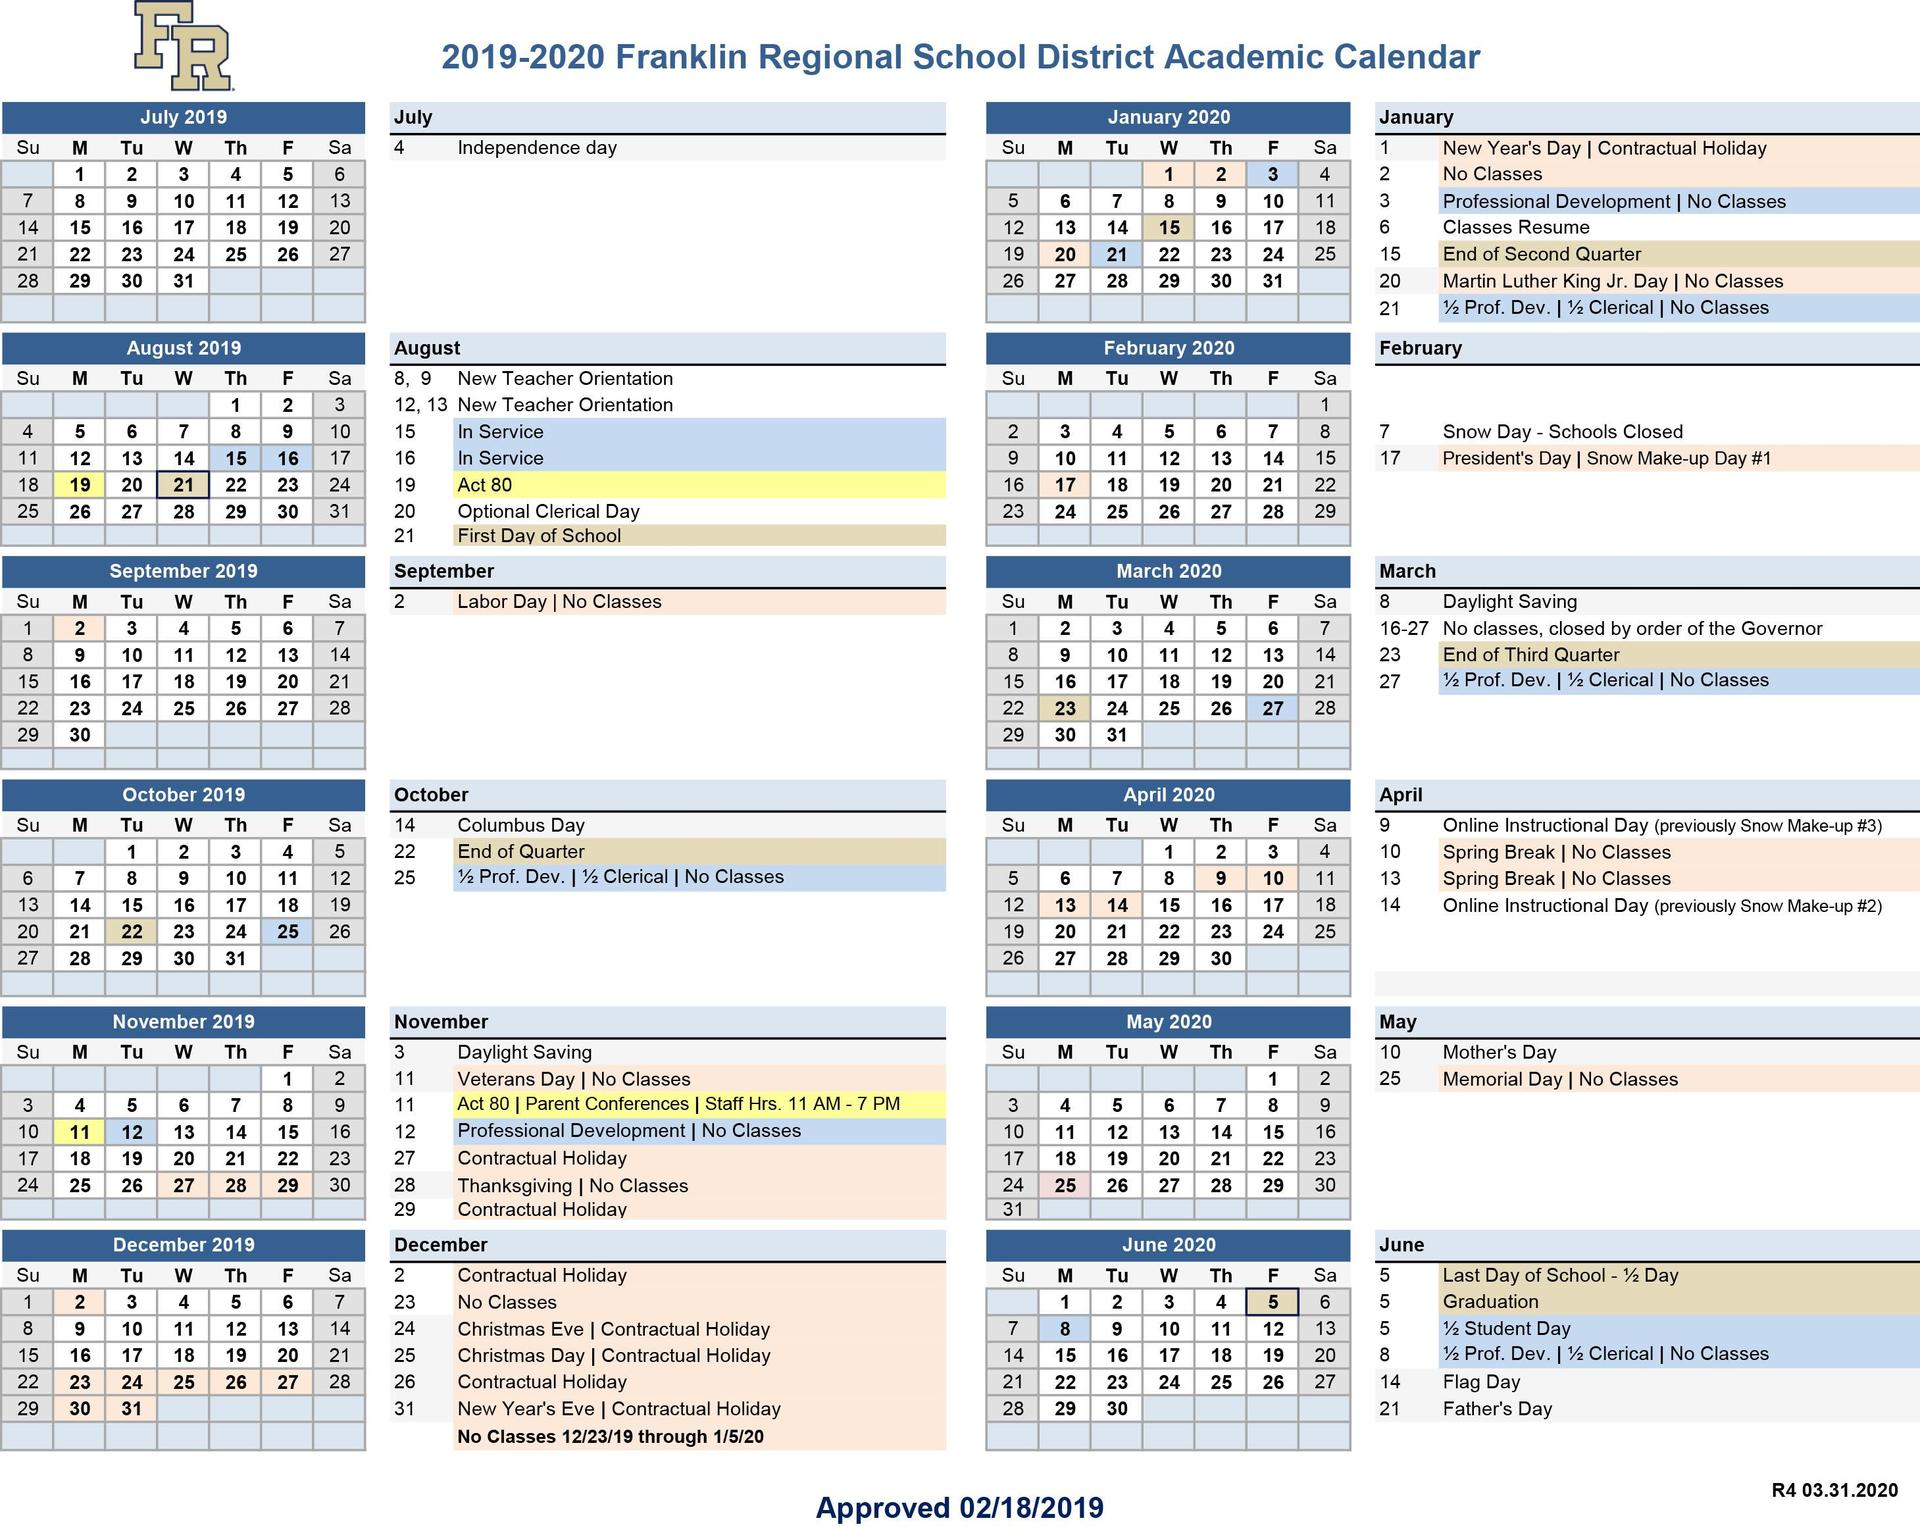 Revised 2020 District Calendar